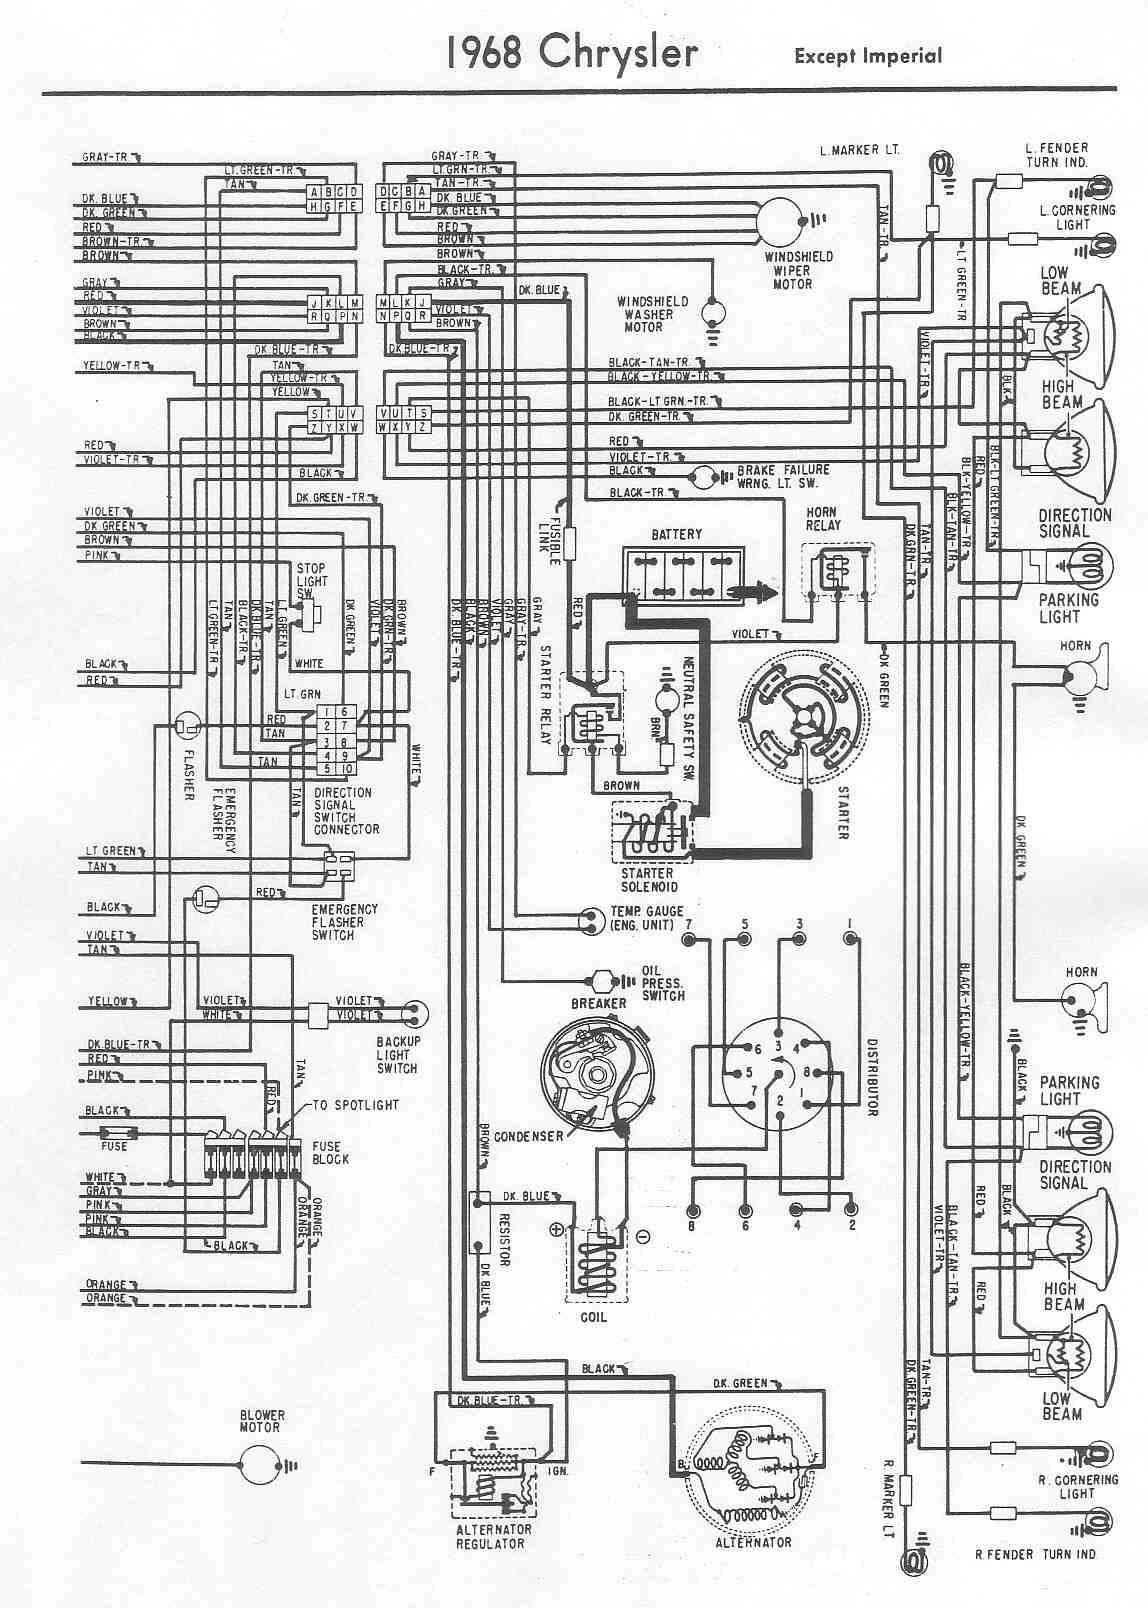 chrysler new yorker wiring diagram example electrical wiring diagram u2022 rh huntervalleyhotels co 1995 Chrysler New Yorker 1997 Chrysler New Yorker